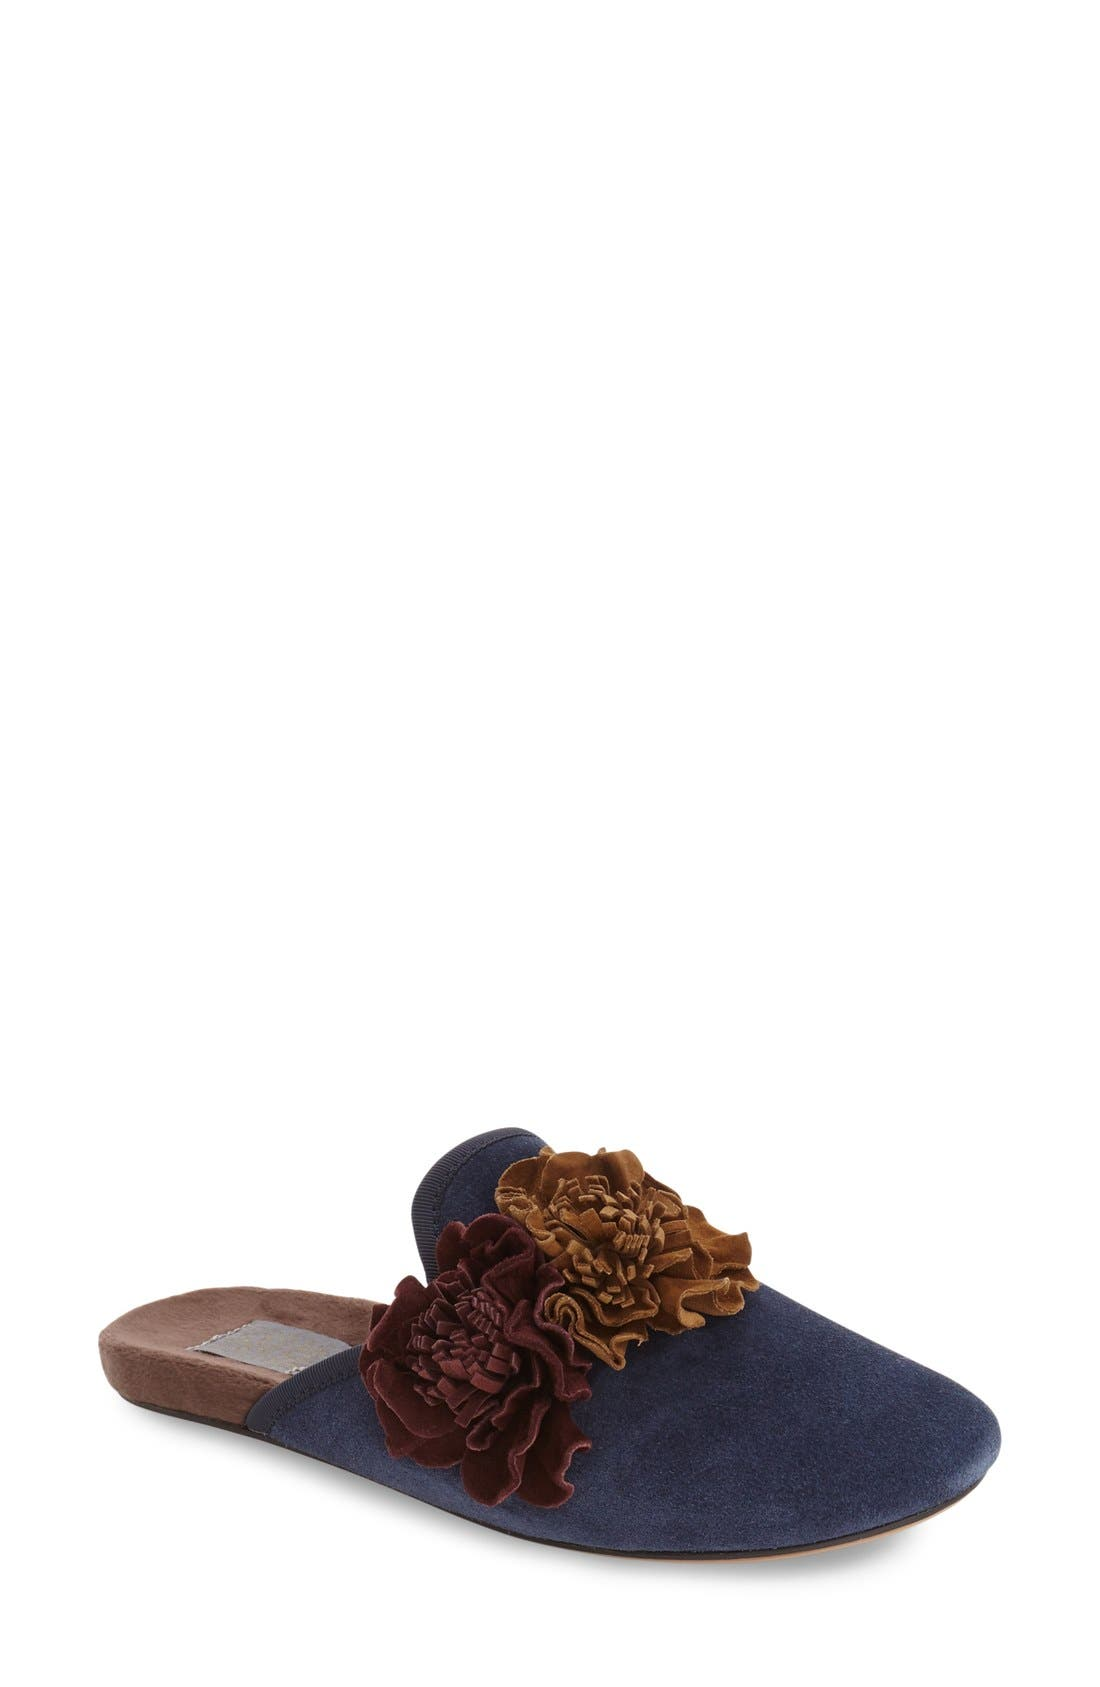 Main Image - Daniel Green Lilah Scuff Slipper (Women)